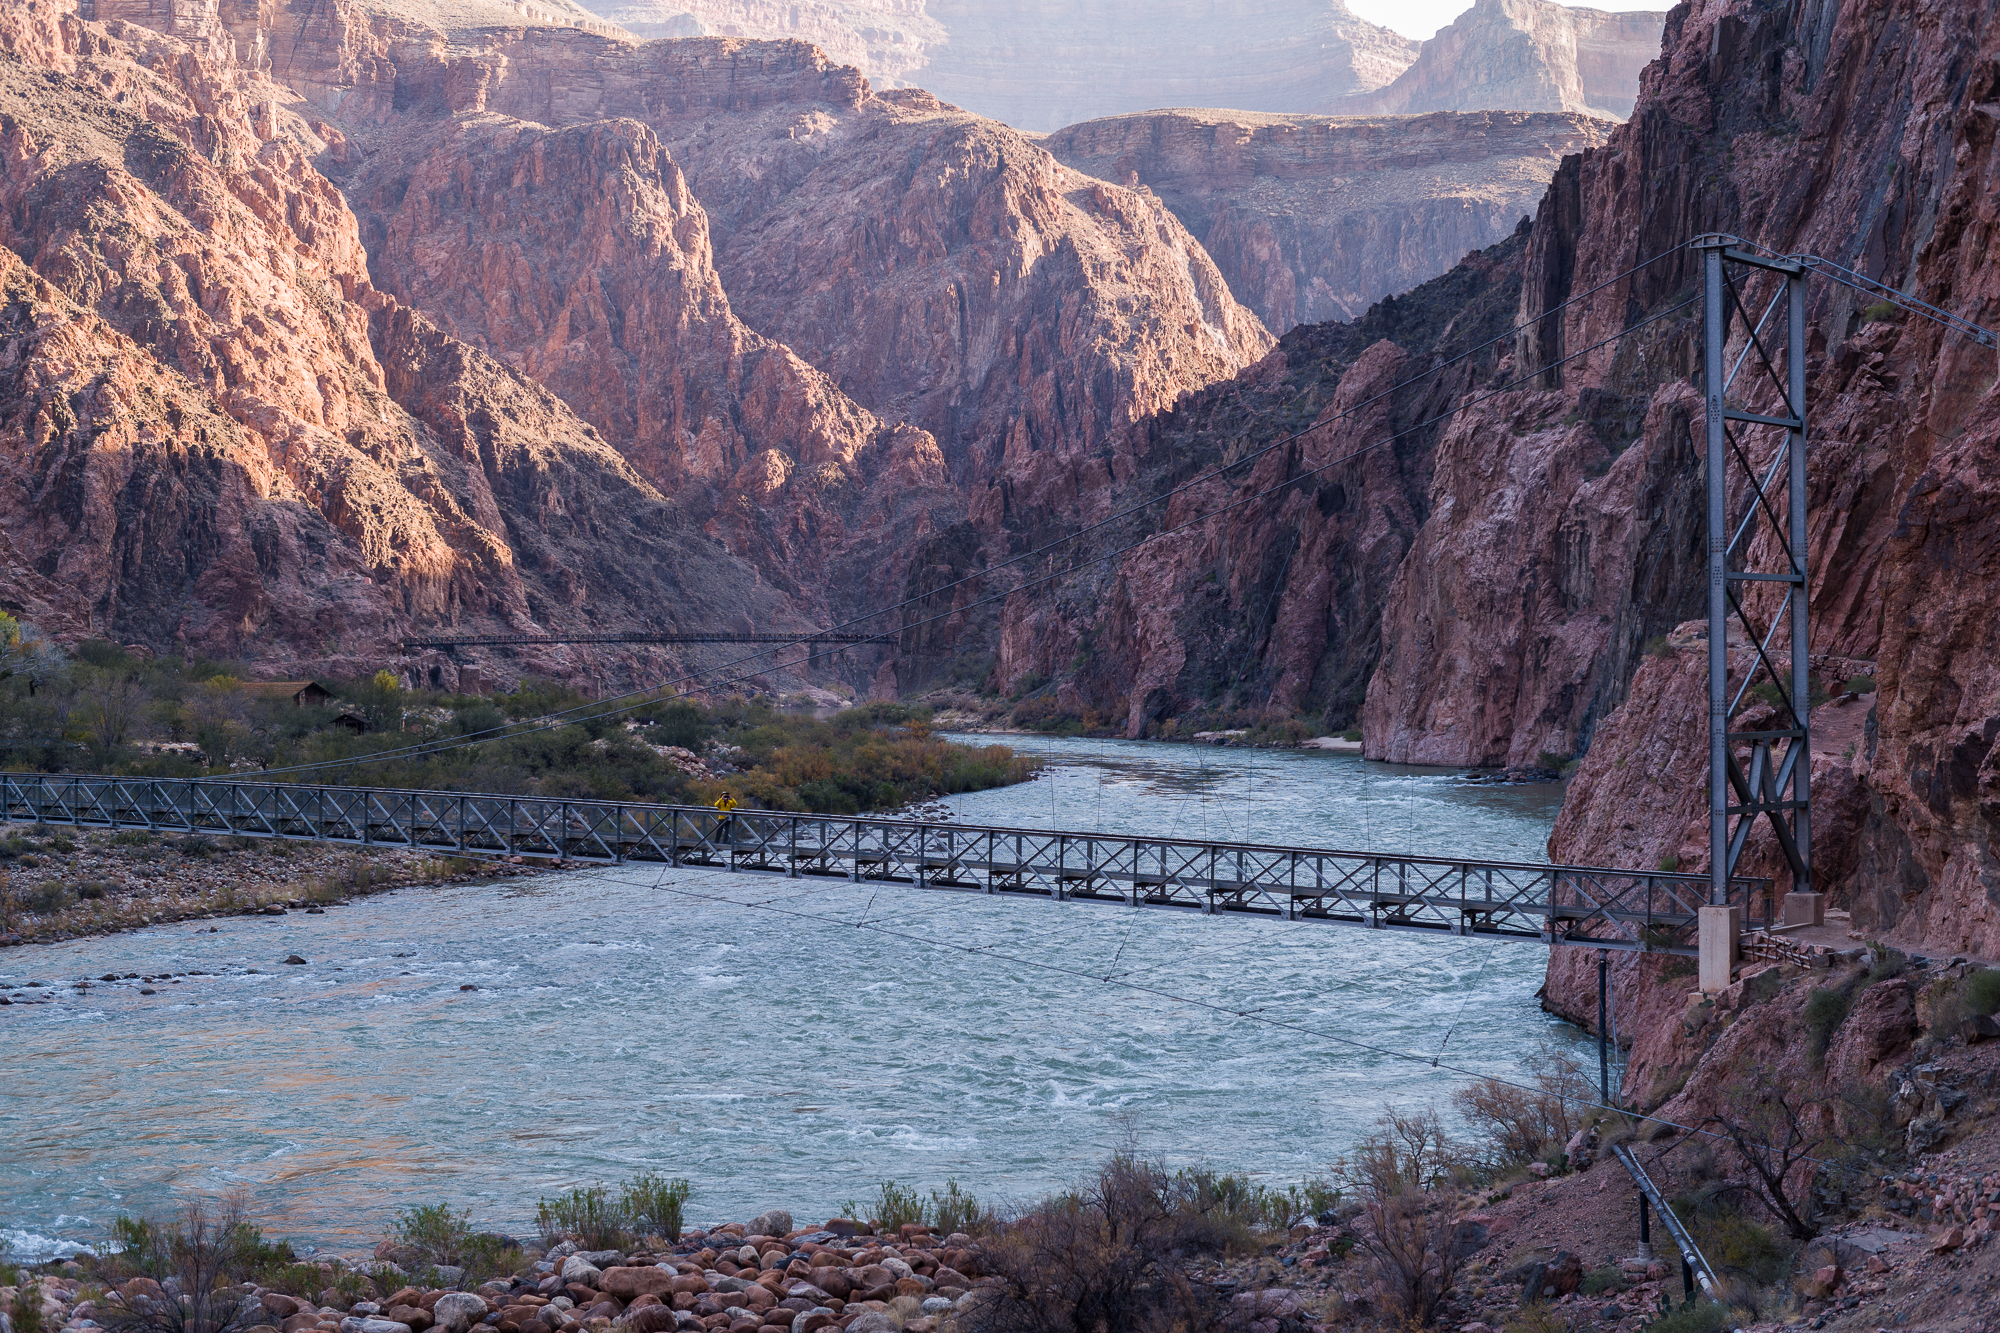 Looking back on the Silver Bridge, the Black Bridge and the Colorado